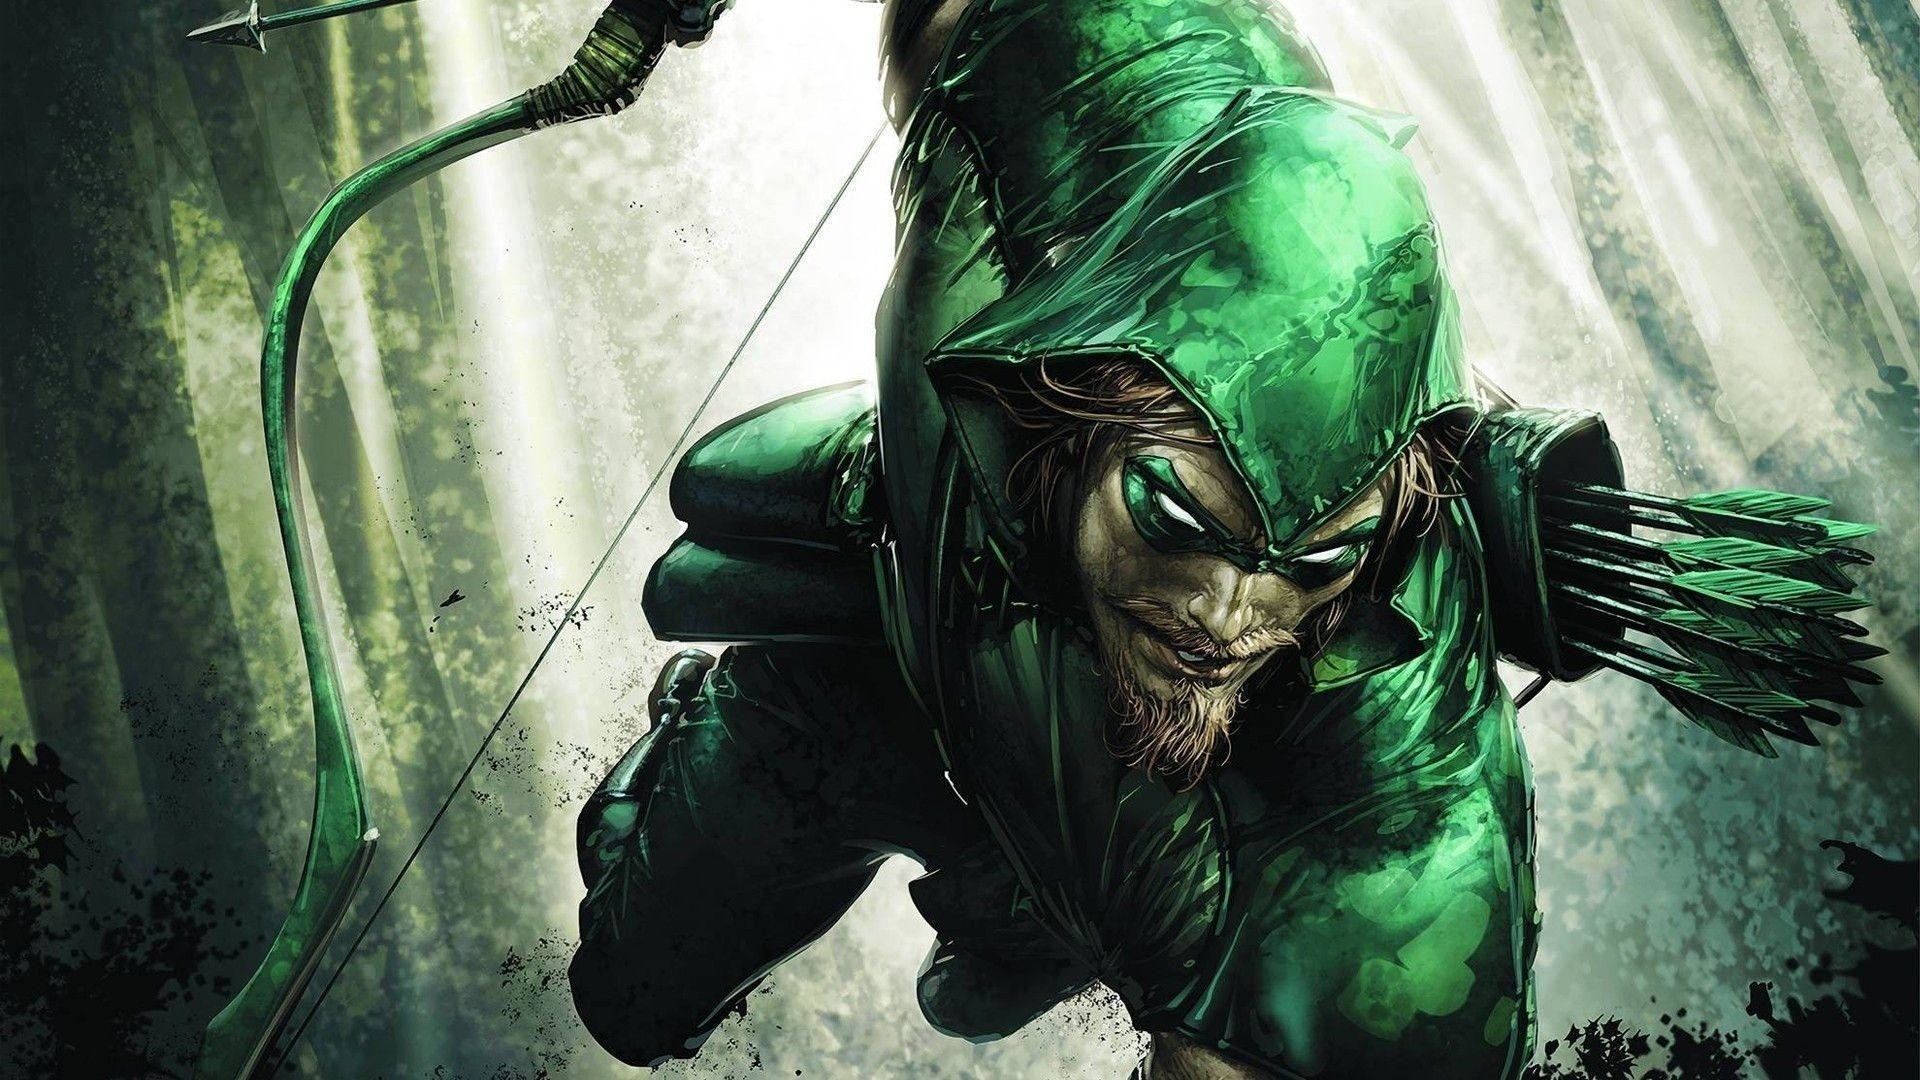 green arrow wallpaper 1920x1080 (79+ images)